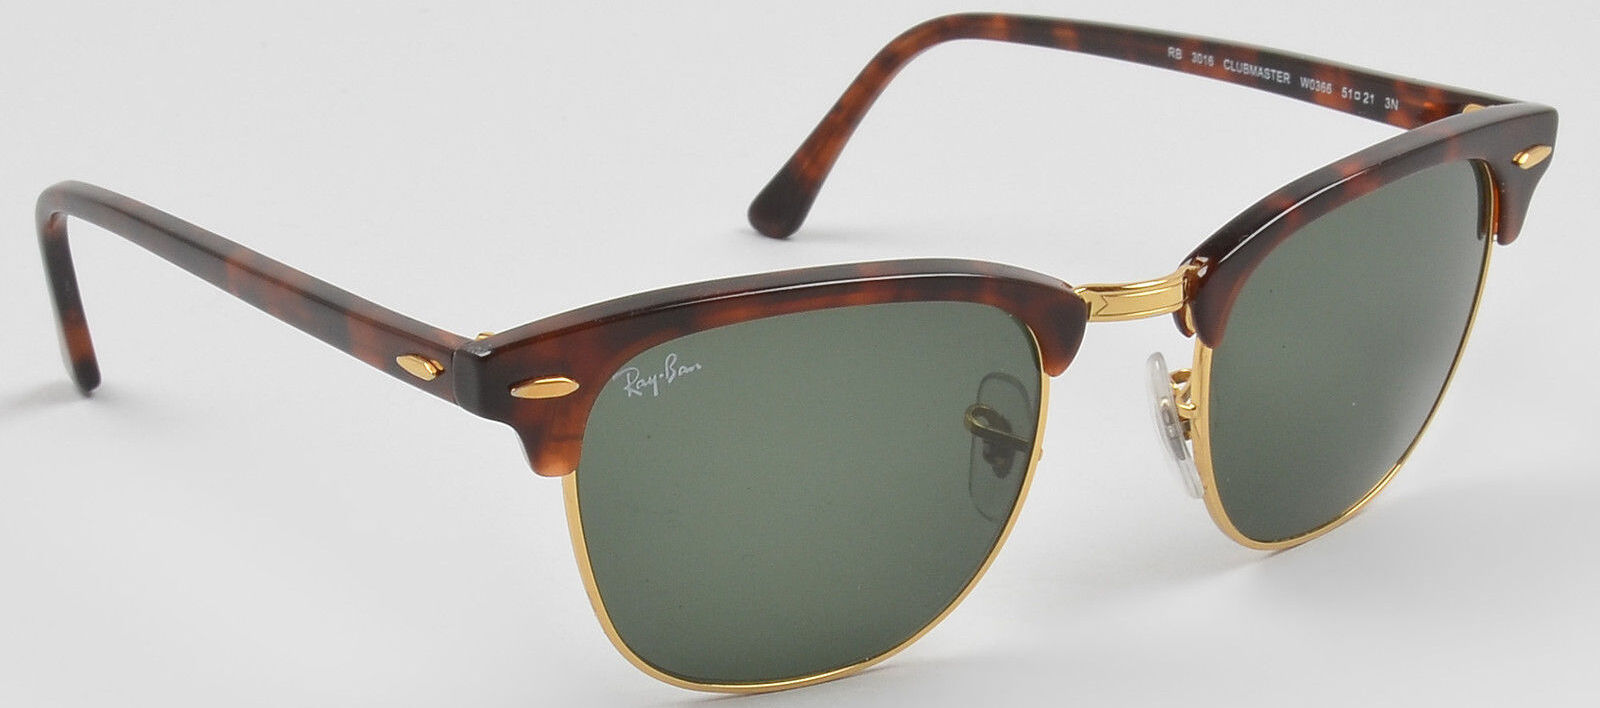 ray ban glass new model  ray ban clubmaster classic